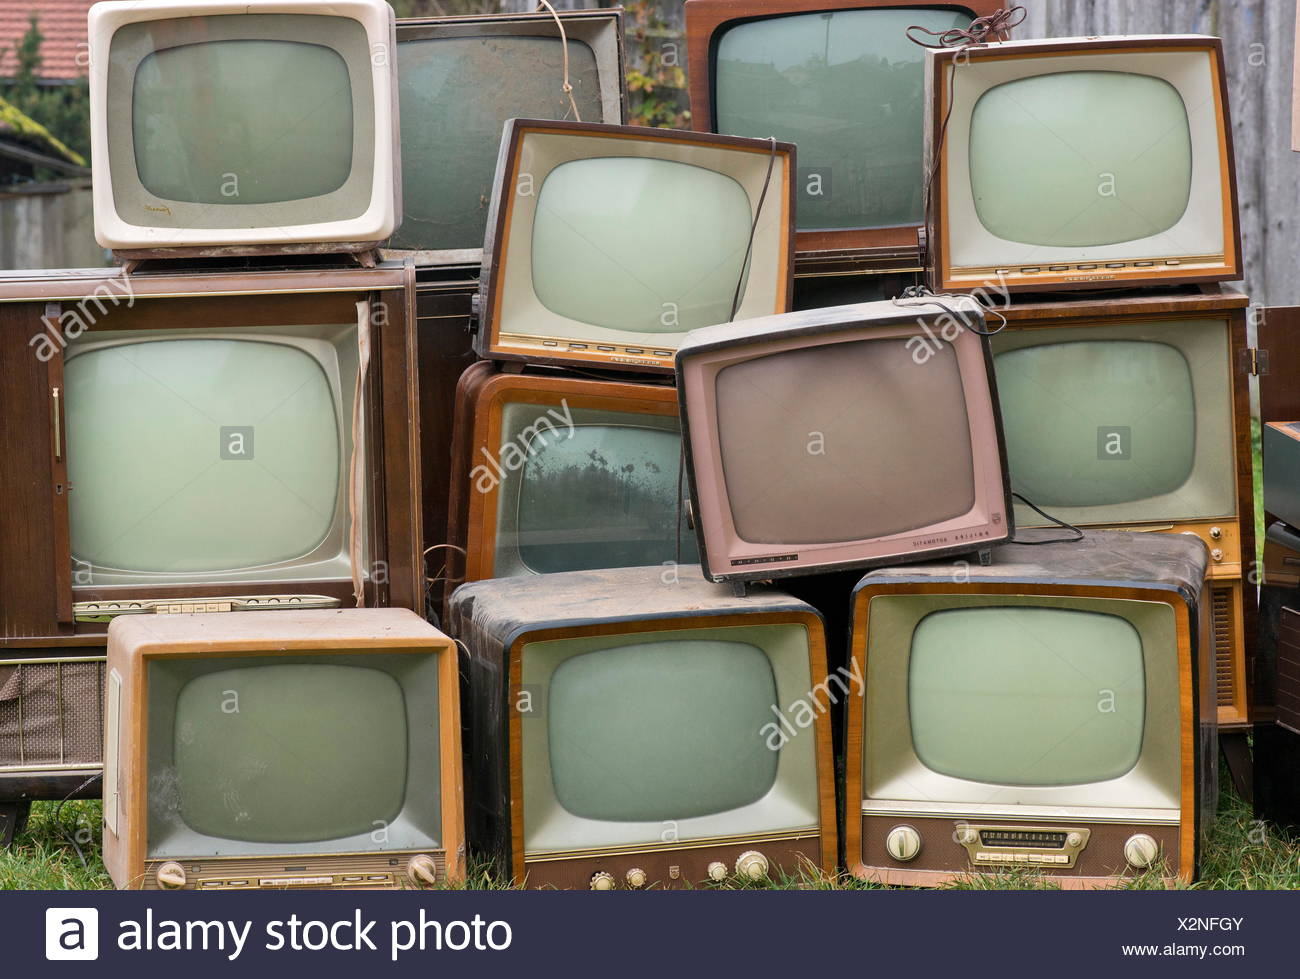 broadcast, television, old German television sets by Neckermann, Saba, Grätz, Philips, Nordmende, Vega, Germany, 1950s and 1960s, piled in the meadow, television wall, wall of tv sets, monitor wall, wall of monitors, television collection, collection of tv sets, television set collection, strange, screen size, screens, telescreen, TV screen, defect, fault, defects, defective, faulty, damaged, broken, e-waste, waste disposal, television receiver, TV history, destroyed, consumer good, consumer item, consumer goods, consumer items, Made in Germany, medium, media, , Additional-Rights-Clearences-NA - Stock Image